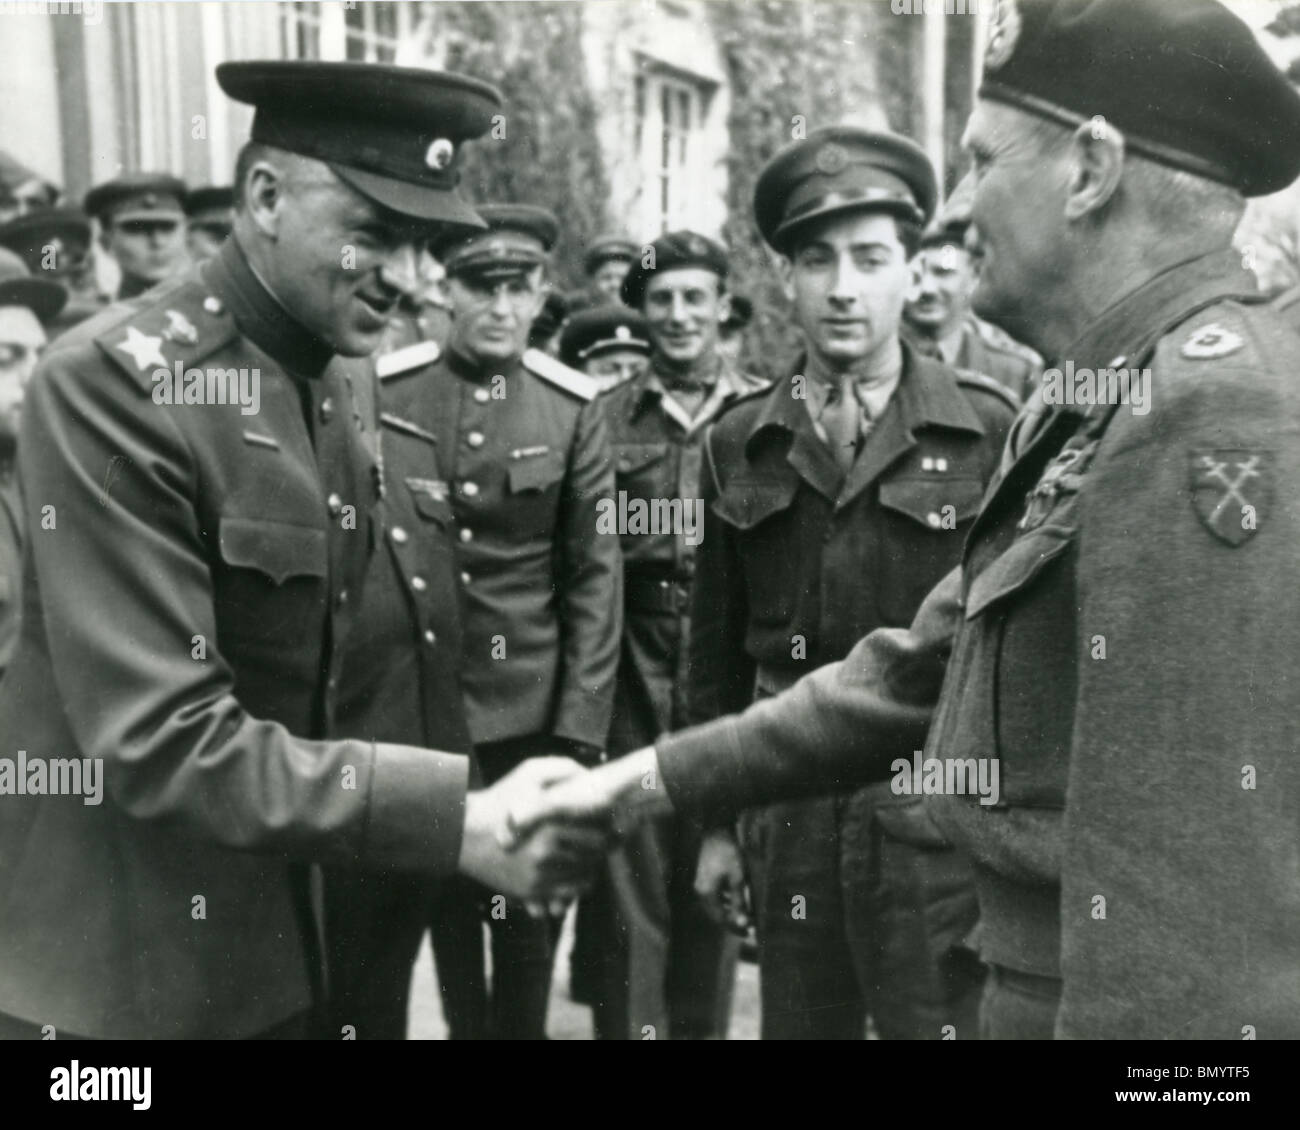 FIELD MARSHALL BERNARD MONTGOMERY on a visit to Moscow in 1945 - Stock Image